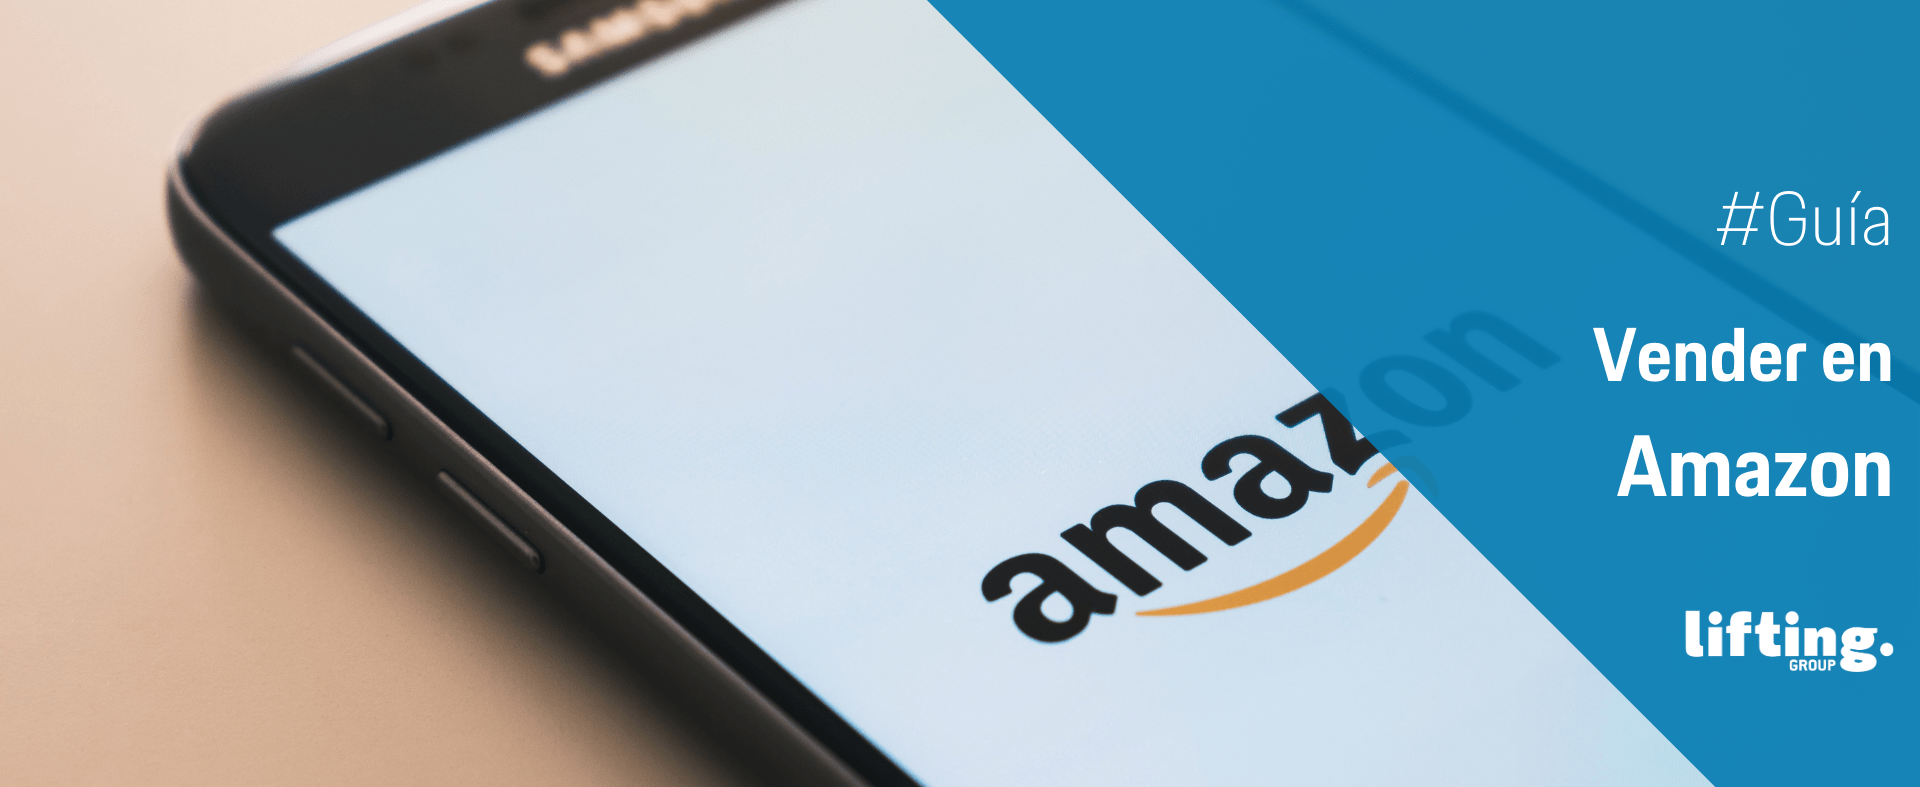 Amazon 2 : ¿Cómo empiezo a vender en Amazon?